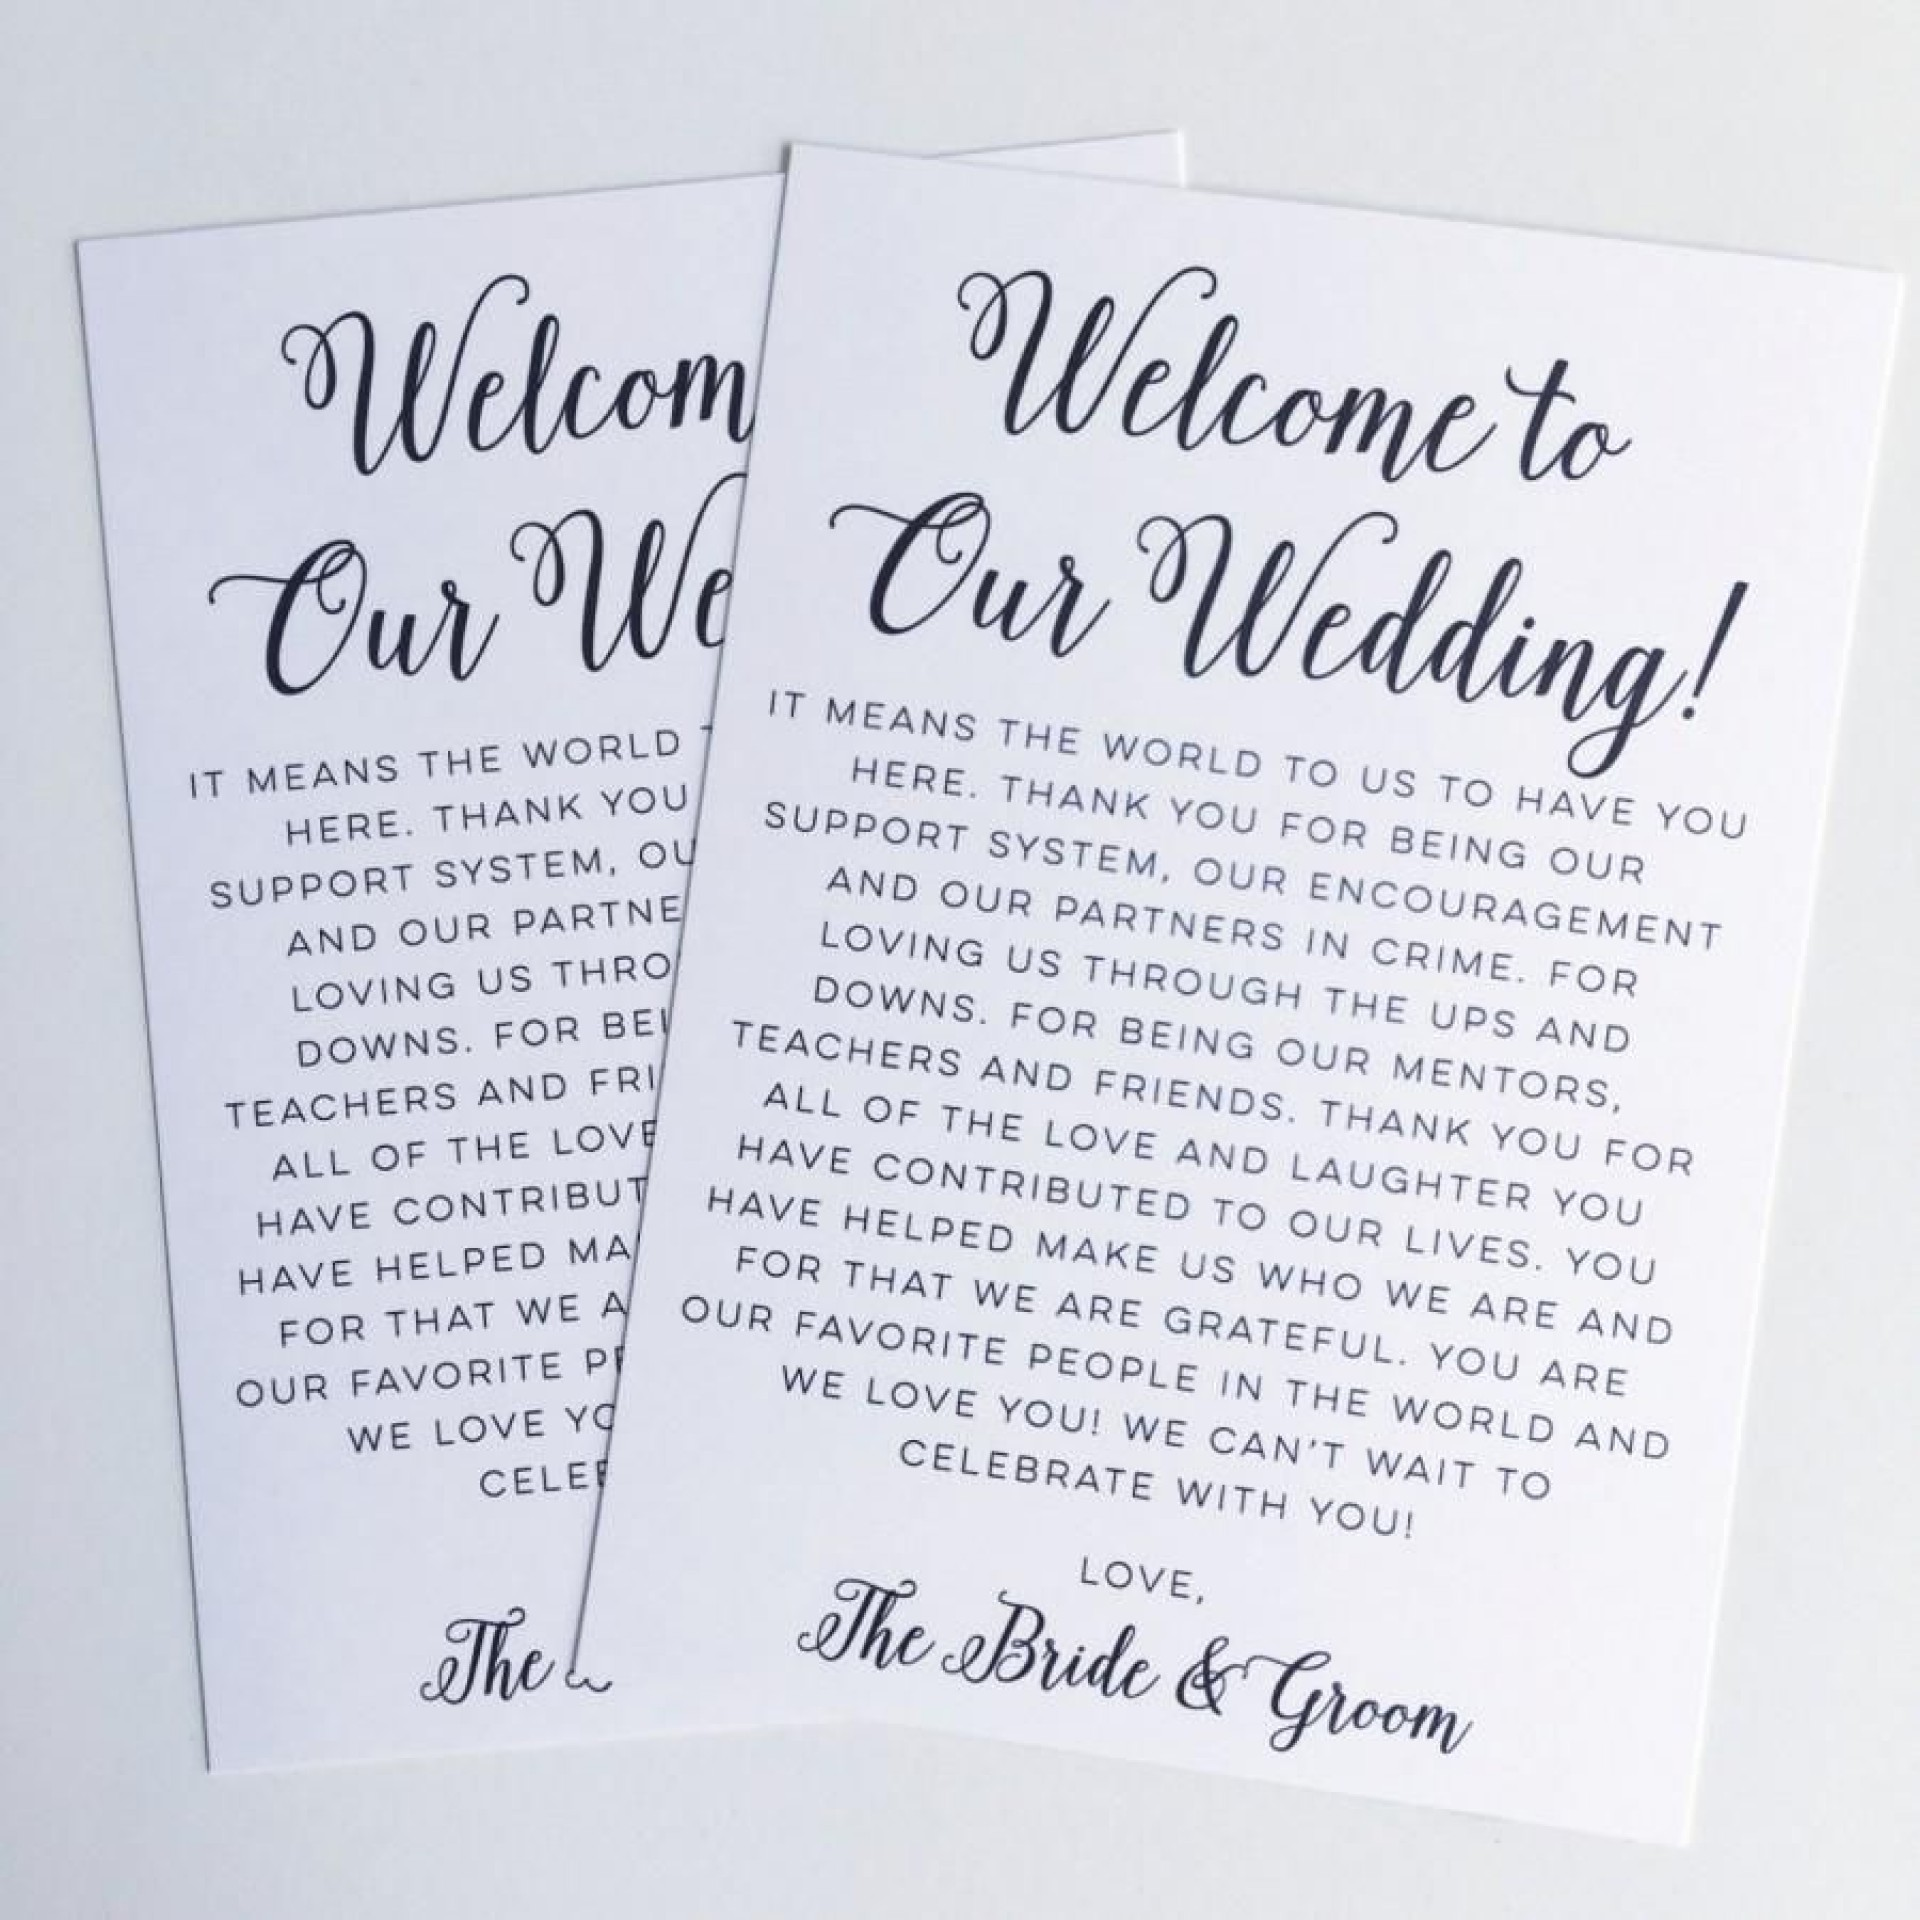 008 Fearsome Destination Wedding Welcome Letter Template Idea  And Itinerary1920